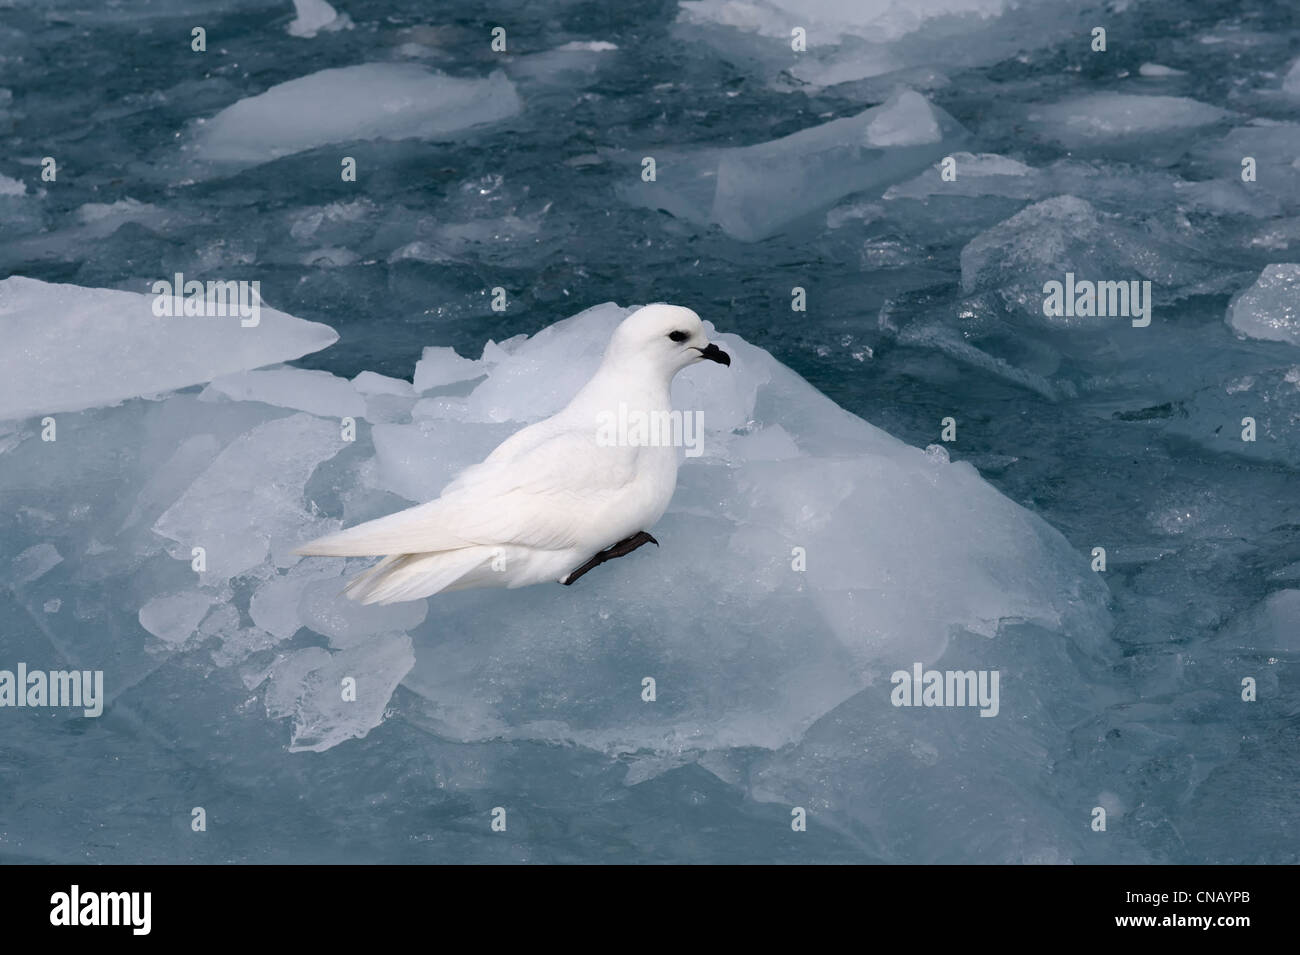 Snow petrel (Pagodroma nivea) on the pack ice, Molkte Bay, South Georgia - Stock Image